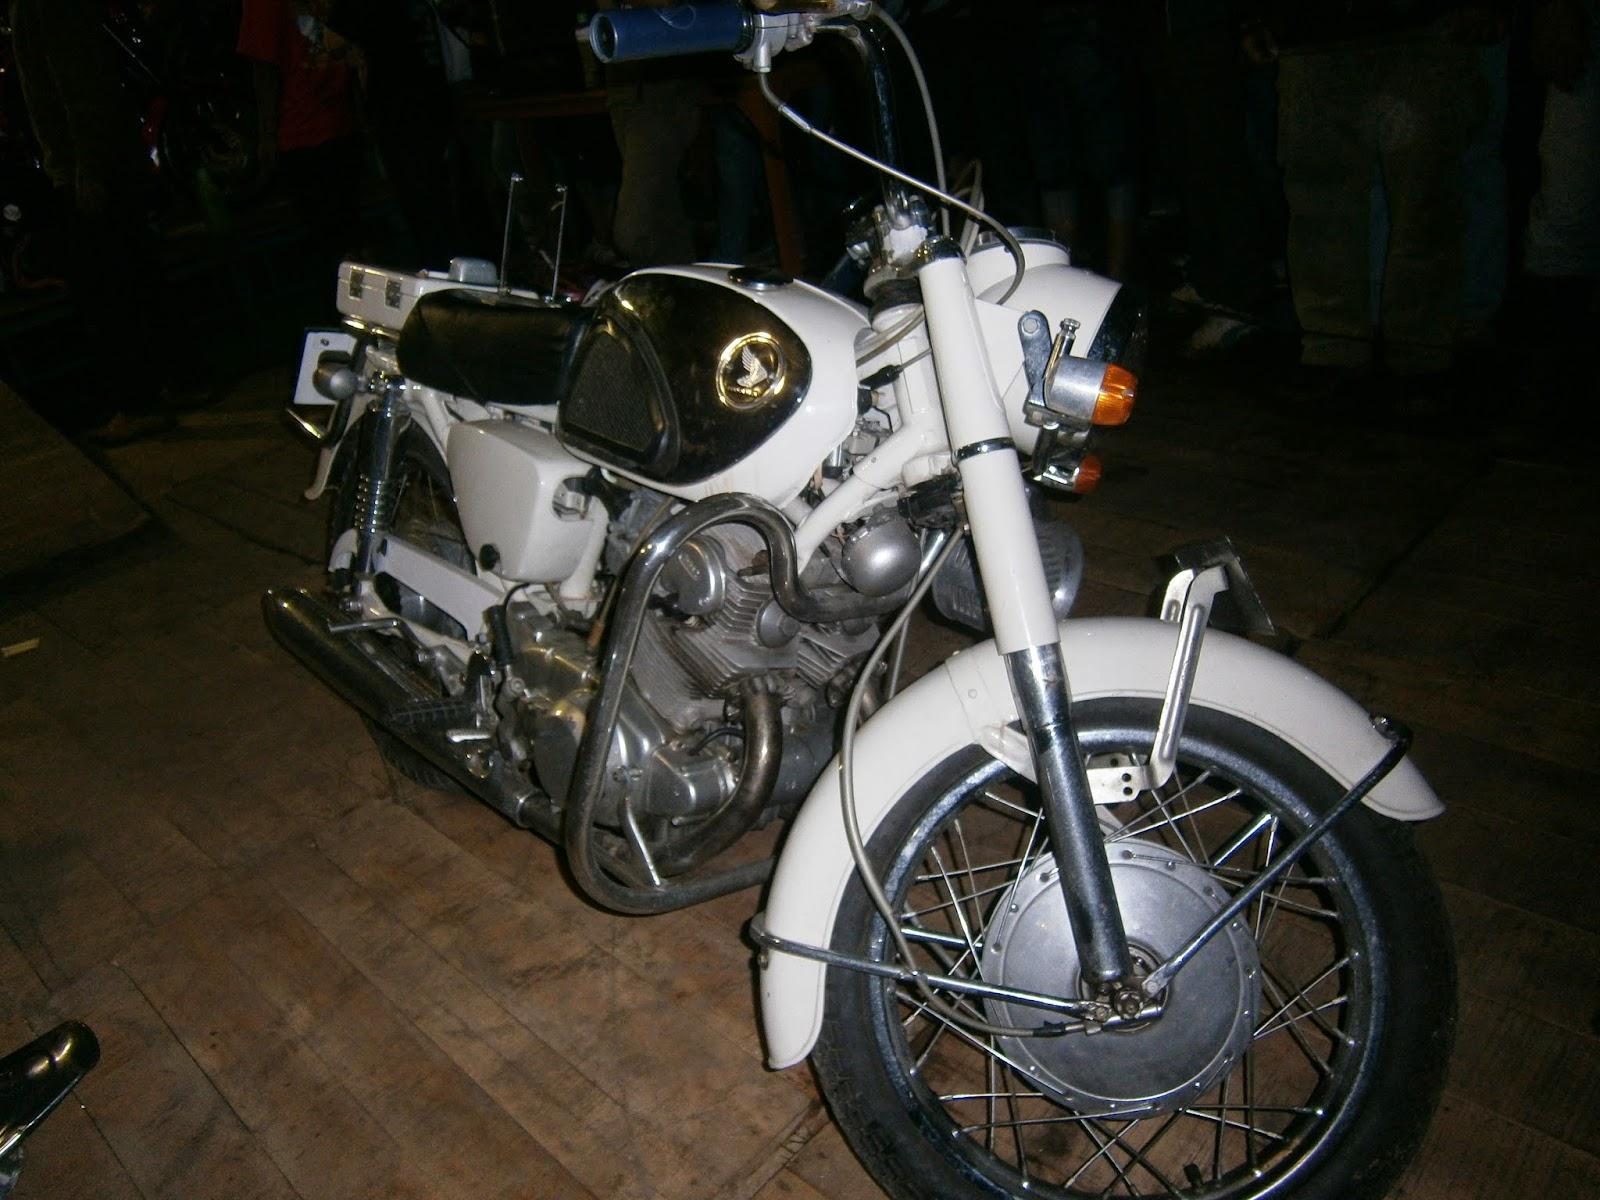 Modifikasi Motor Honda Dream Kumpulan Modifikasi Motor Scoopy Terbaru